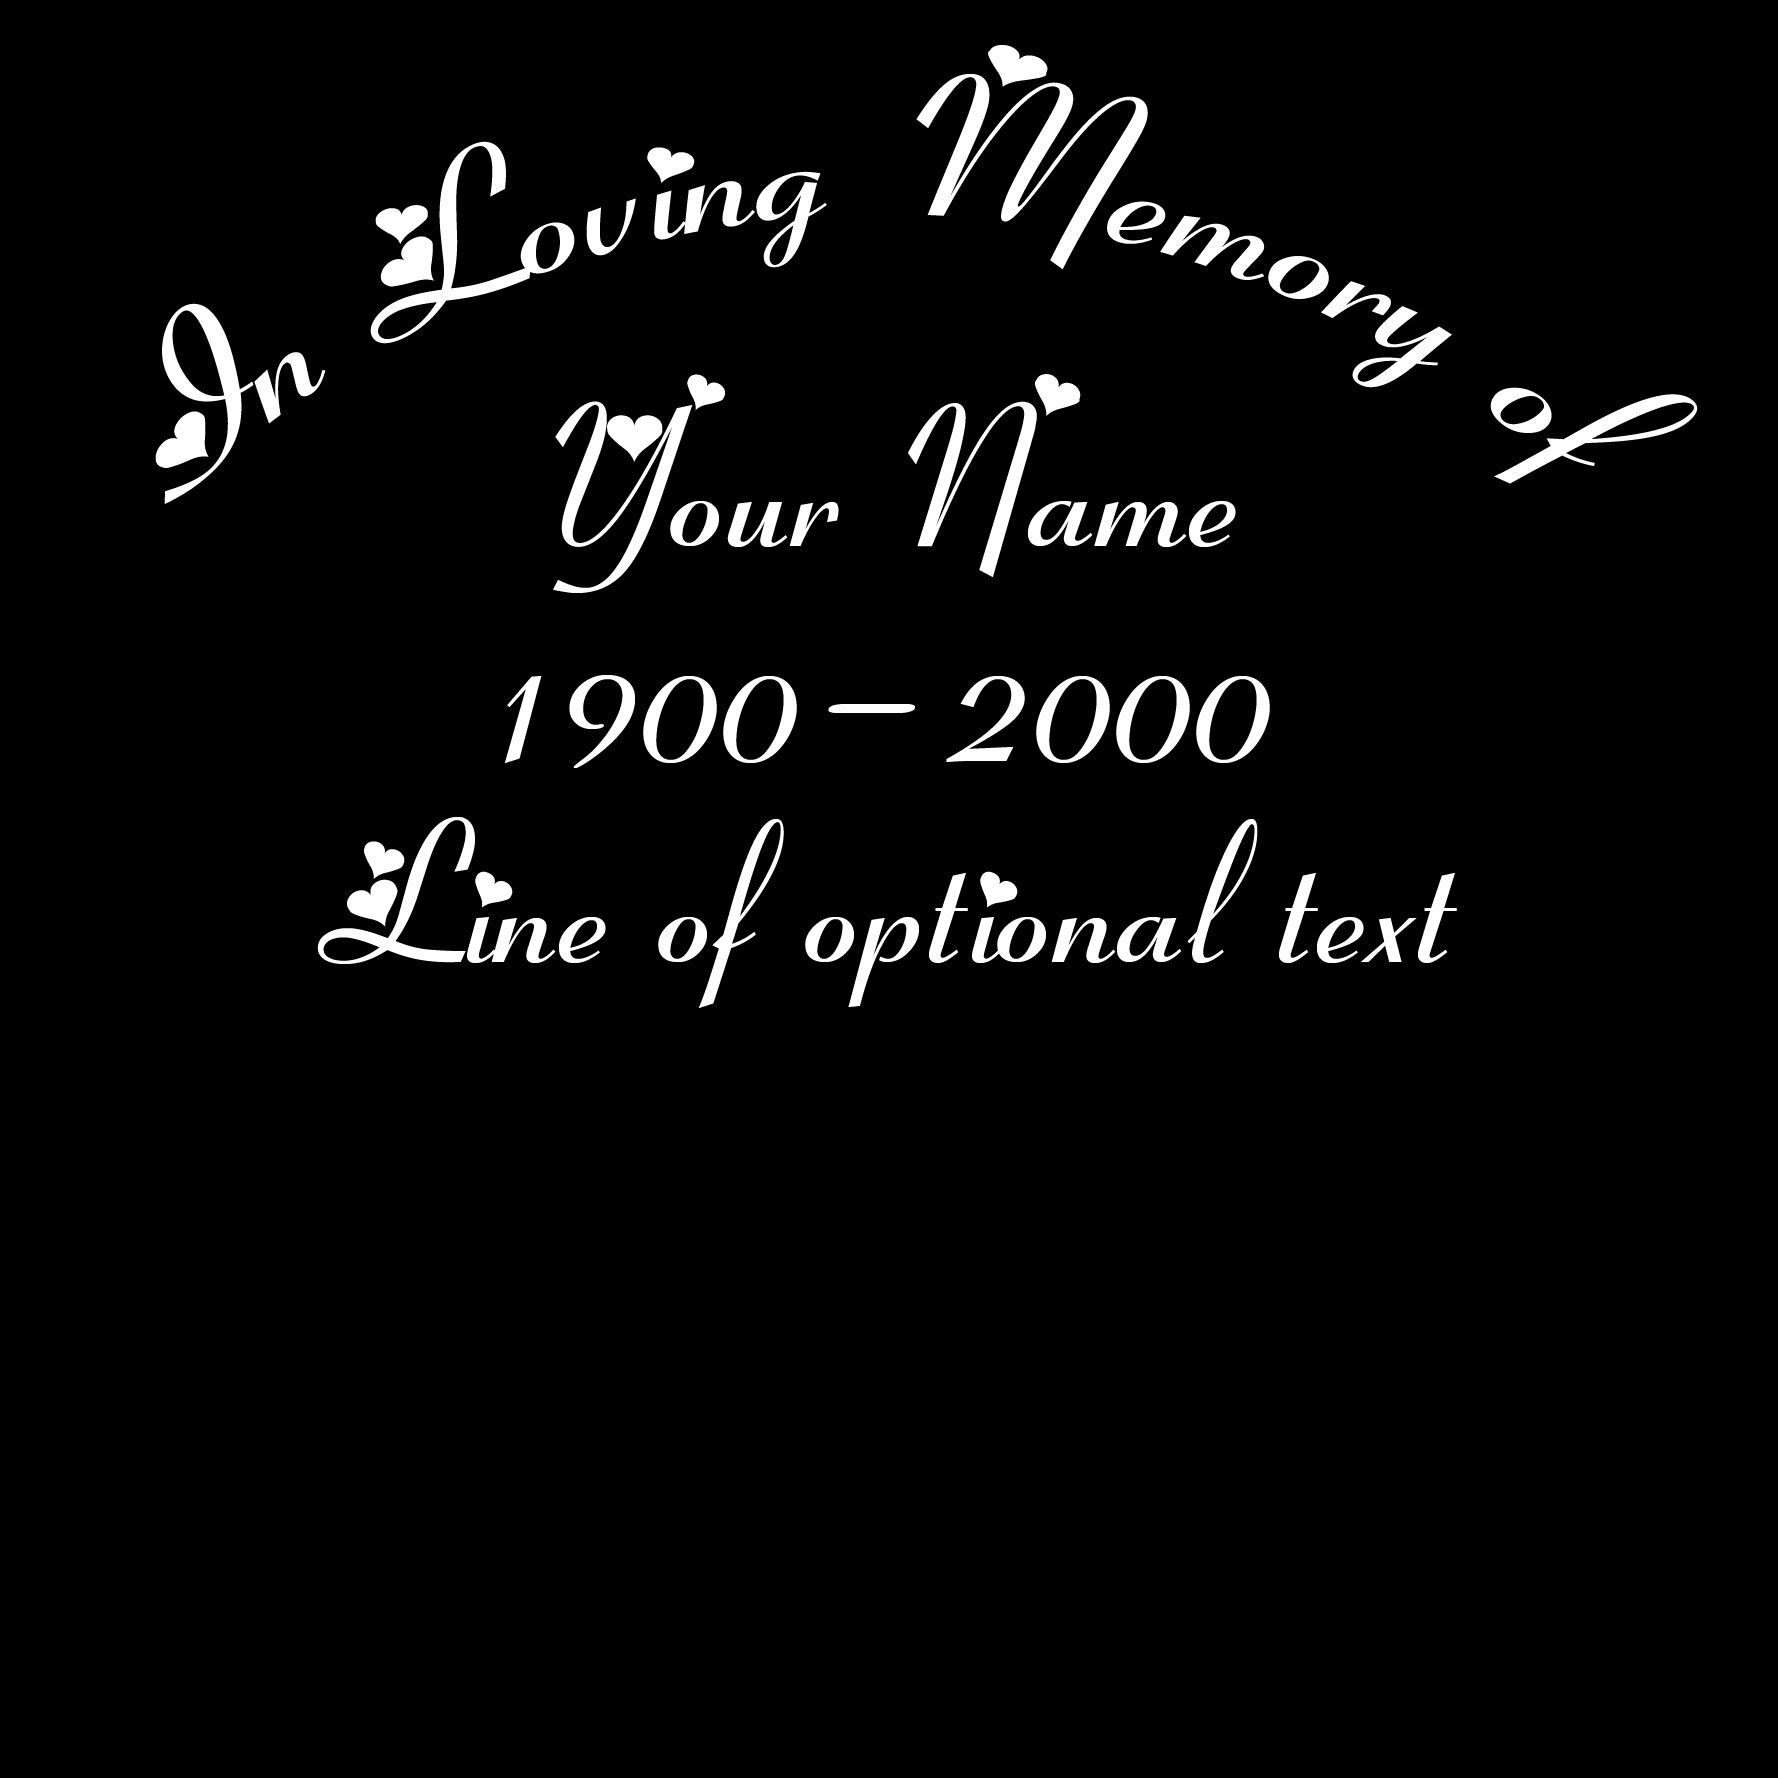 002 Awful In Loving Memory Decal Template High Def  TemplatesFull